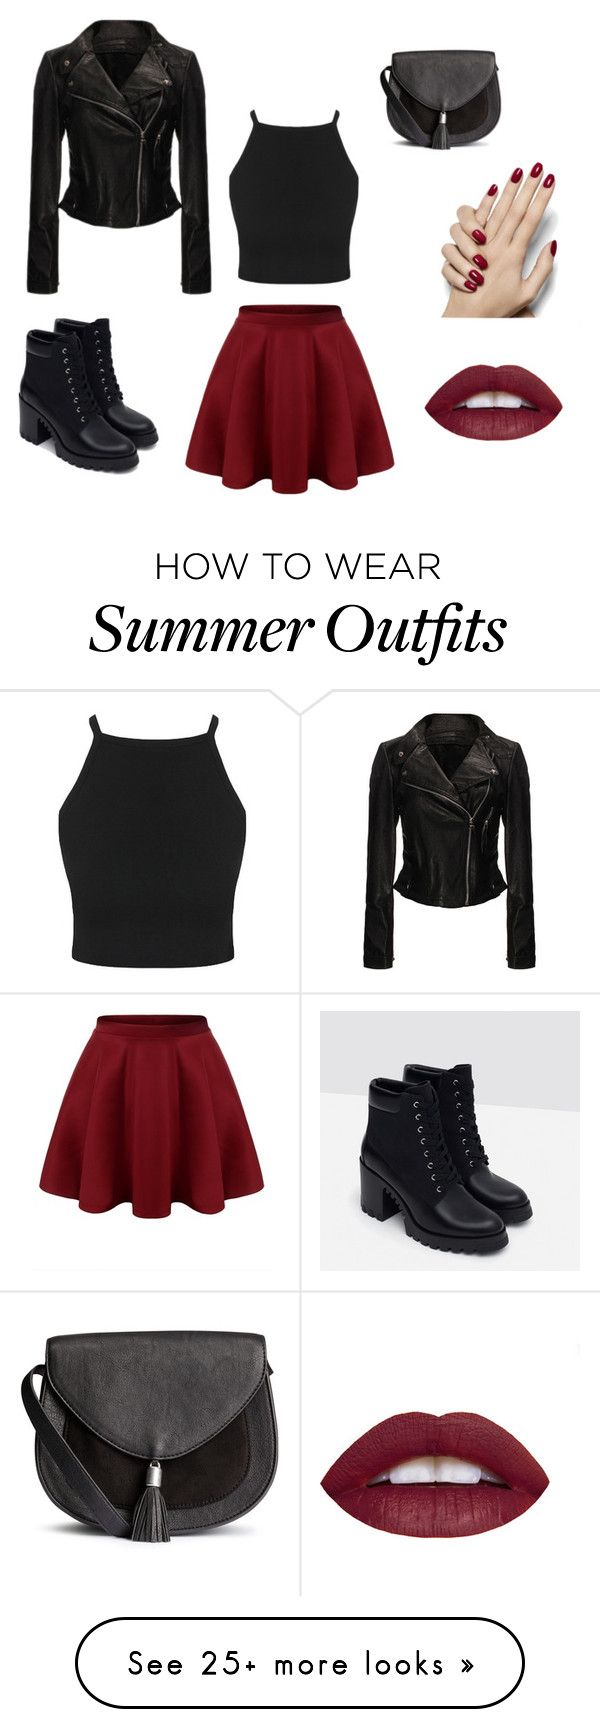 """""""Aria Montgomery"""" by grace1215 on Polyvore featuring Zara, women's clothing, women's fashion, women, female, woman, misses and juniors"""